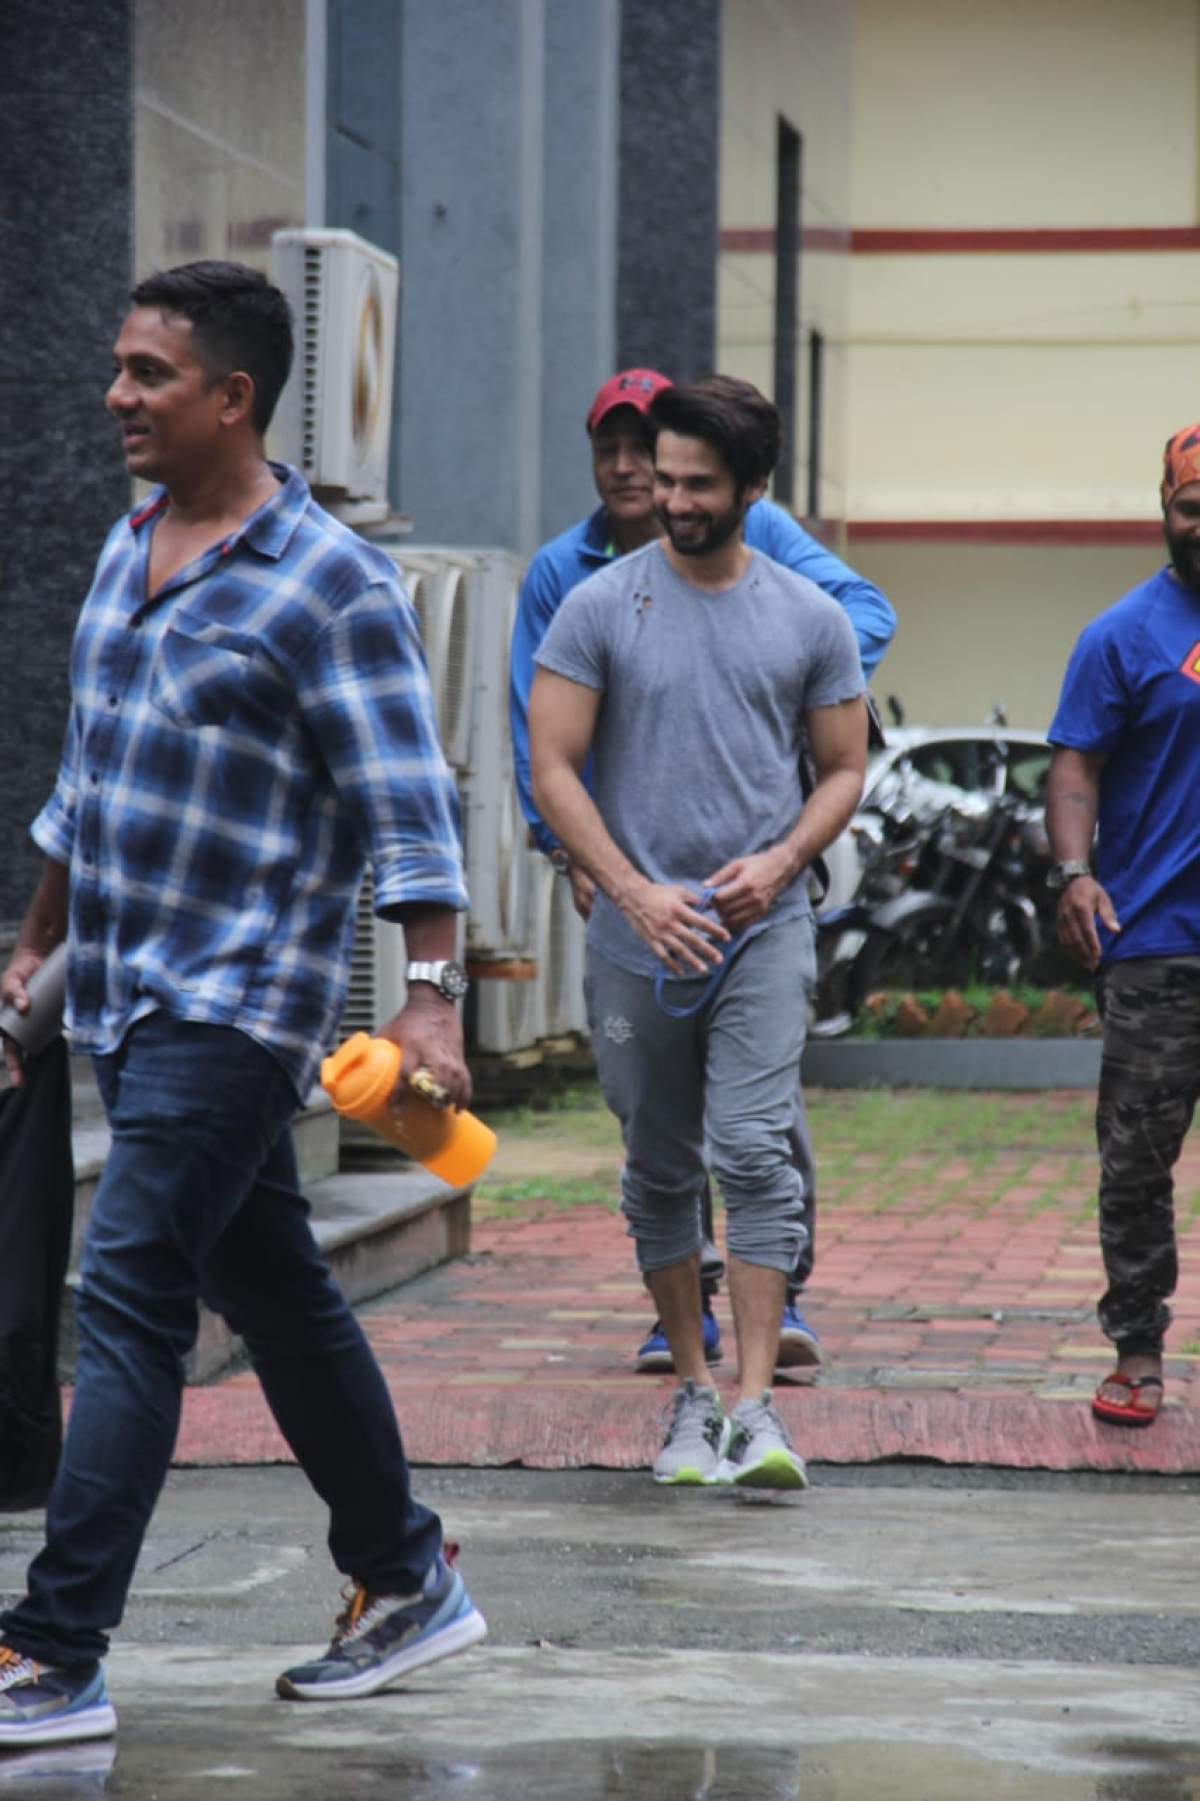 Shahid Kapoor heading home with wife after a gym session in Mumbai.